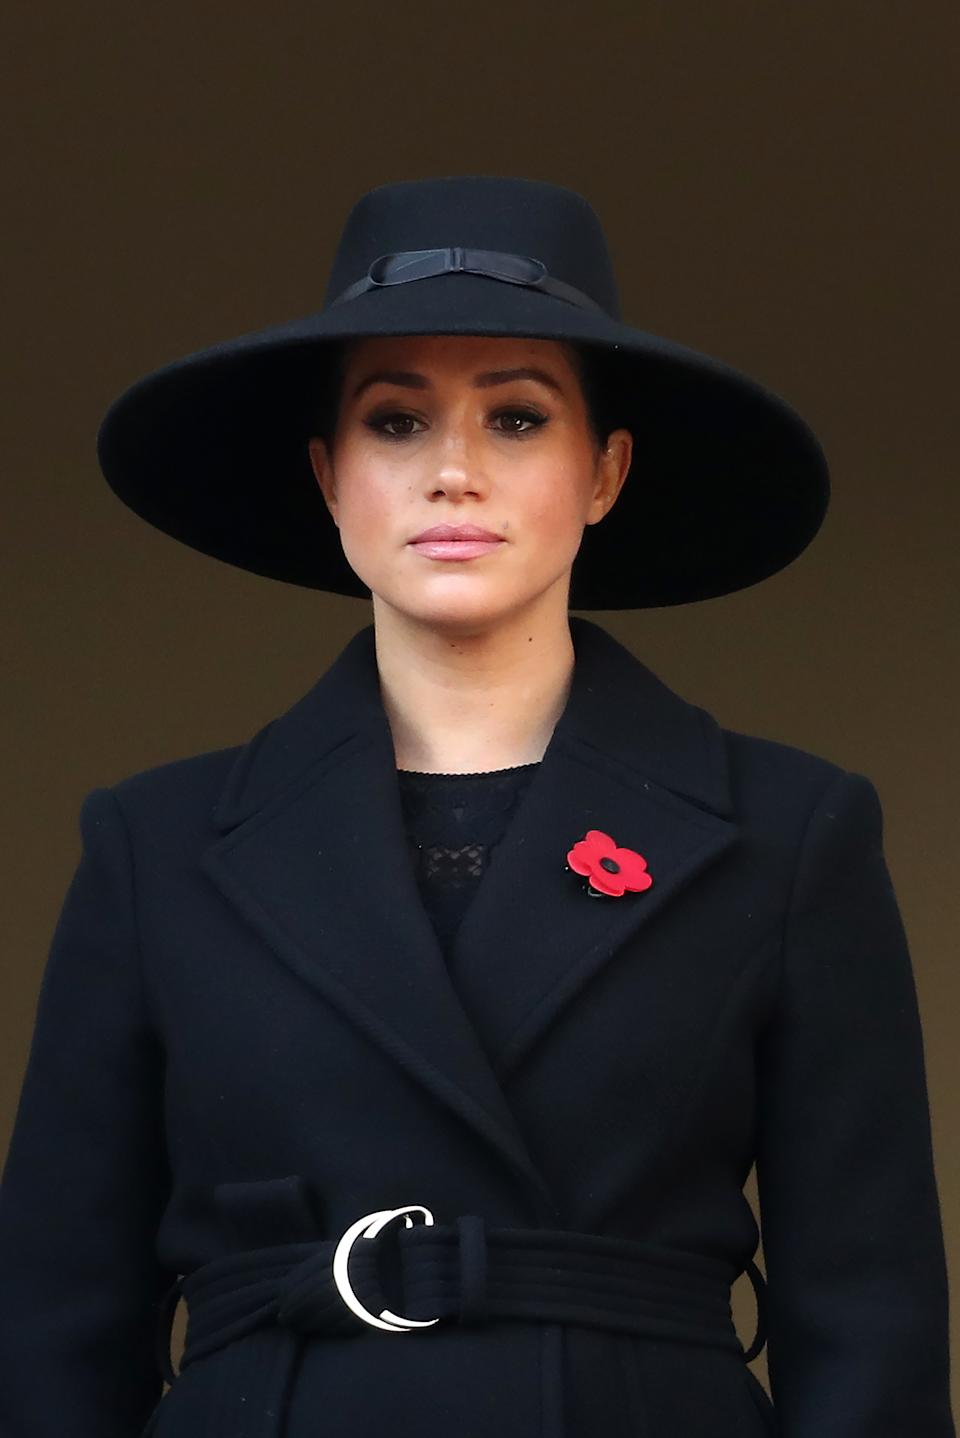 Meghan Markle watched the service this morning from another balcony [Image: Getty]